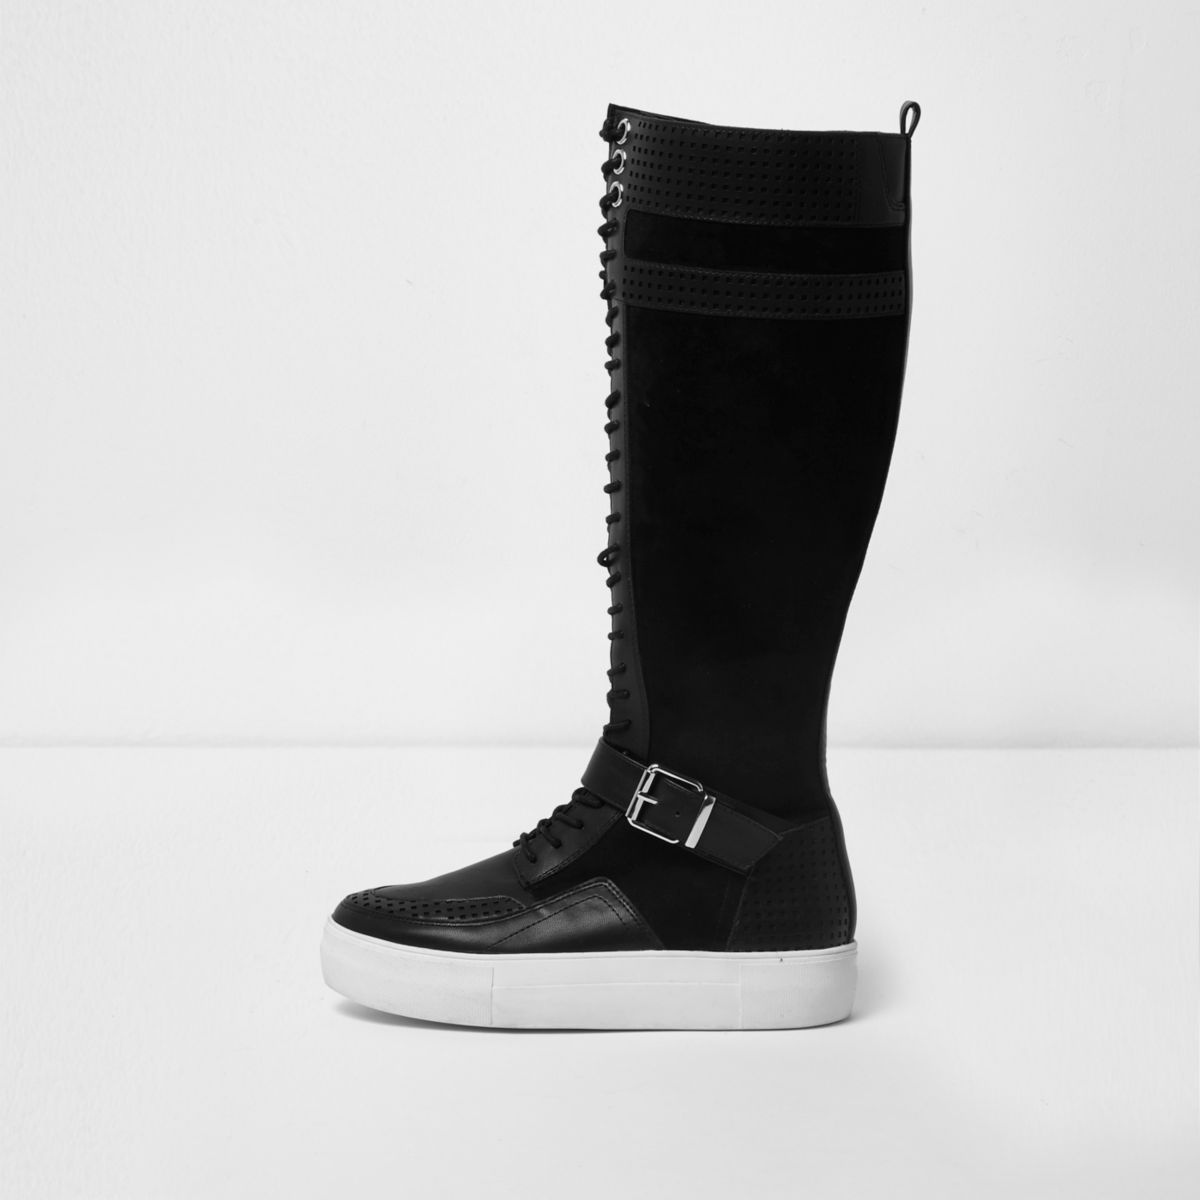 Black lace-up flatform knee high trainers